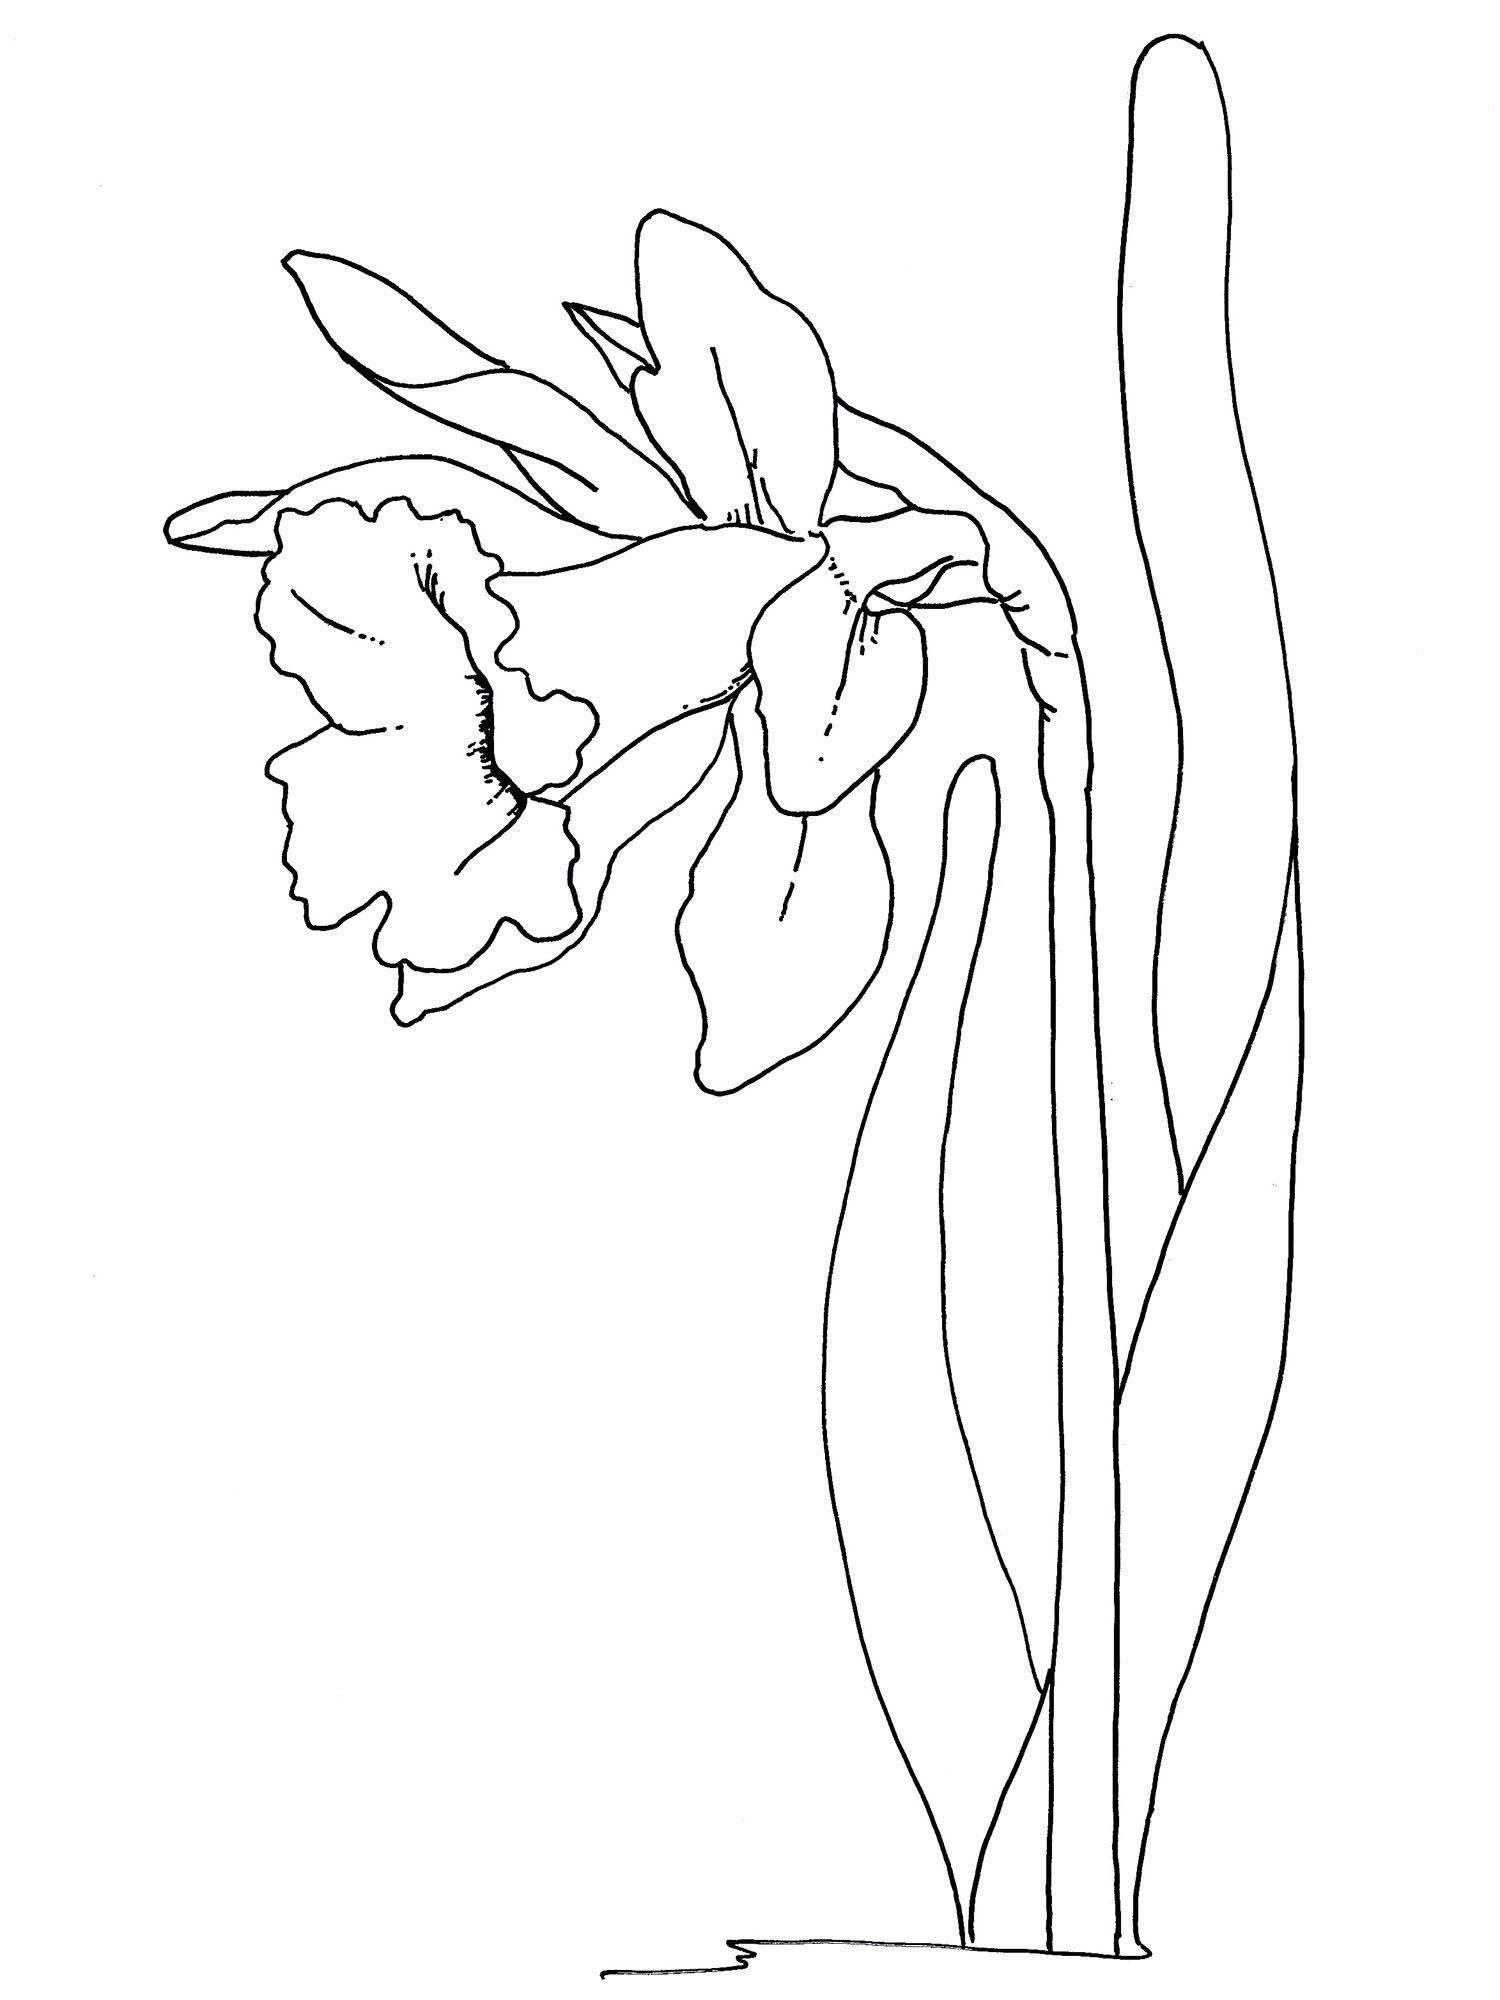 Easter Flowers Coloring Pages – Daffodil Coloring Pages by the Collection Of Daffodil Coloring Pages Gallery